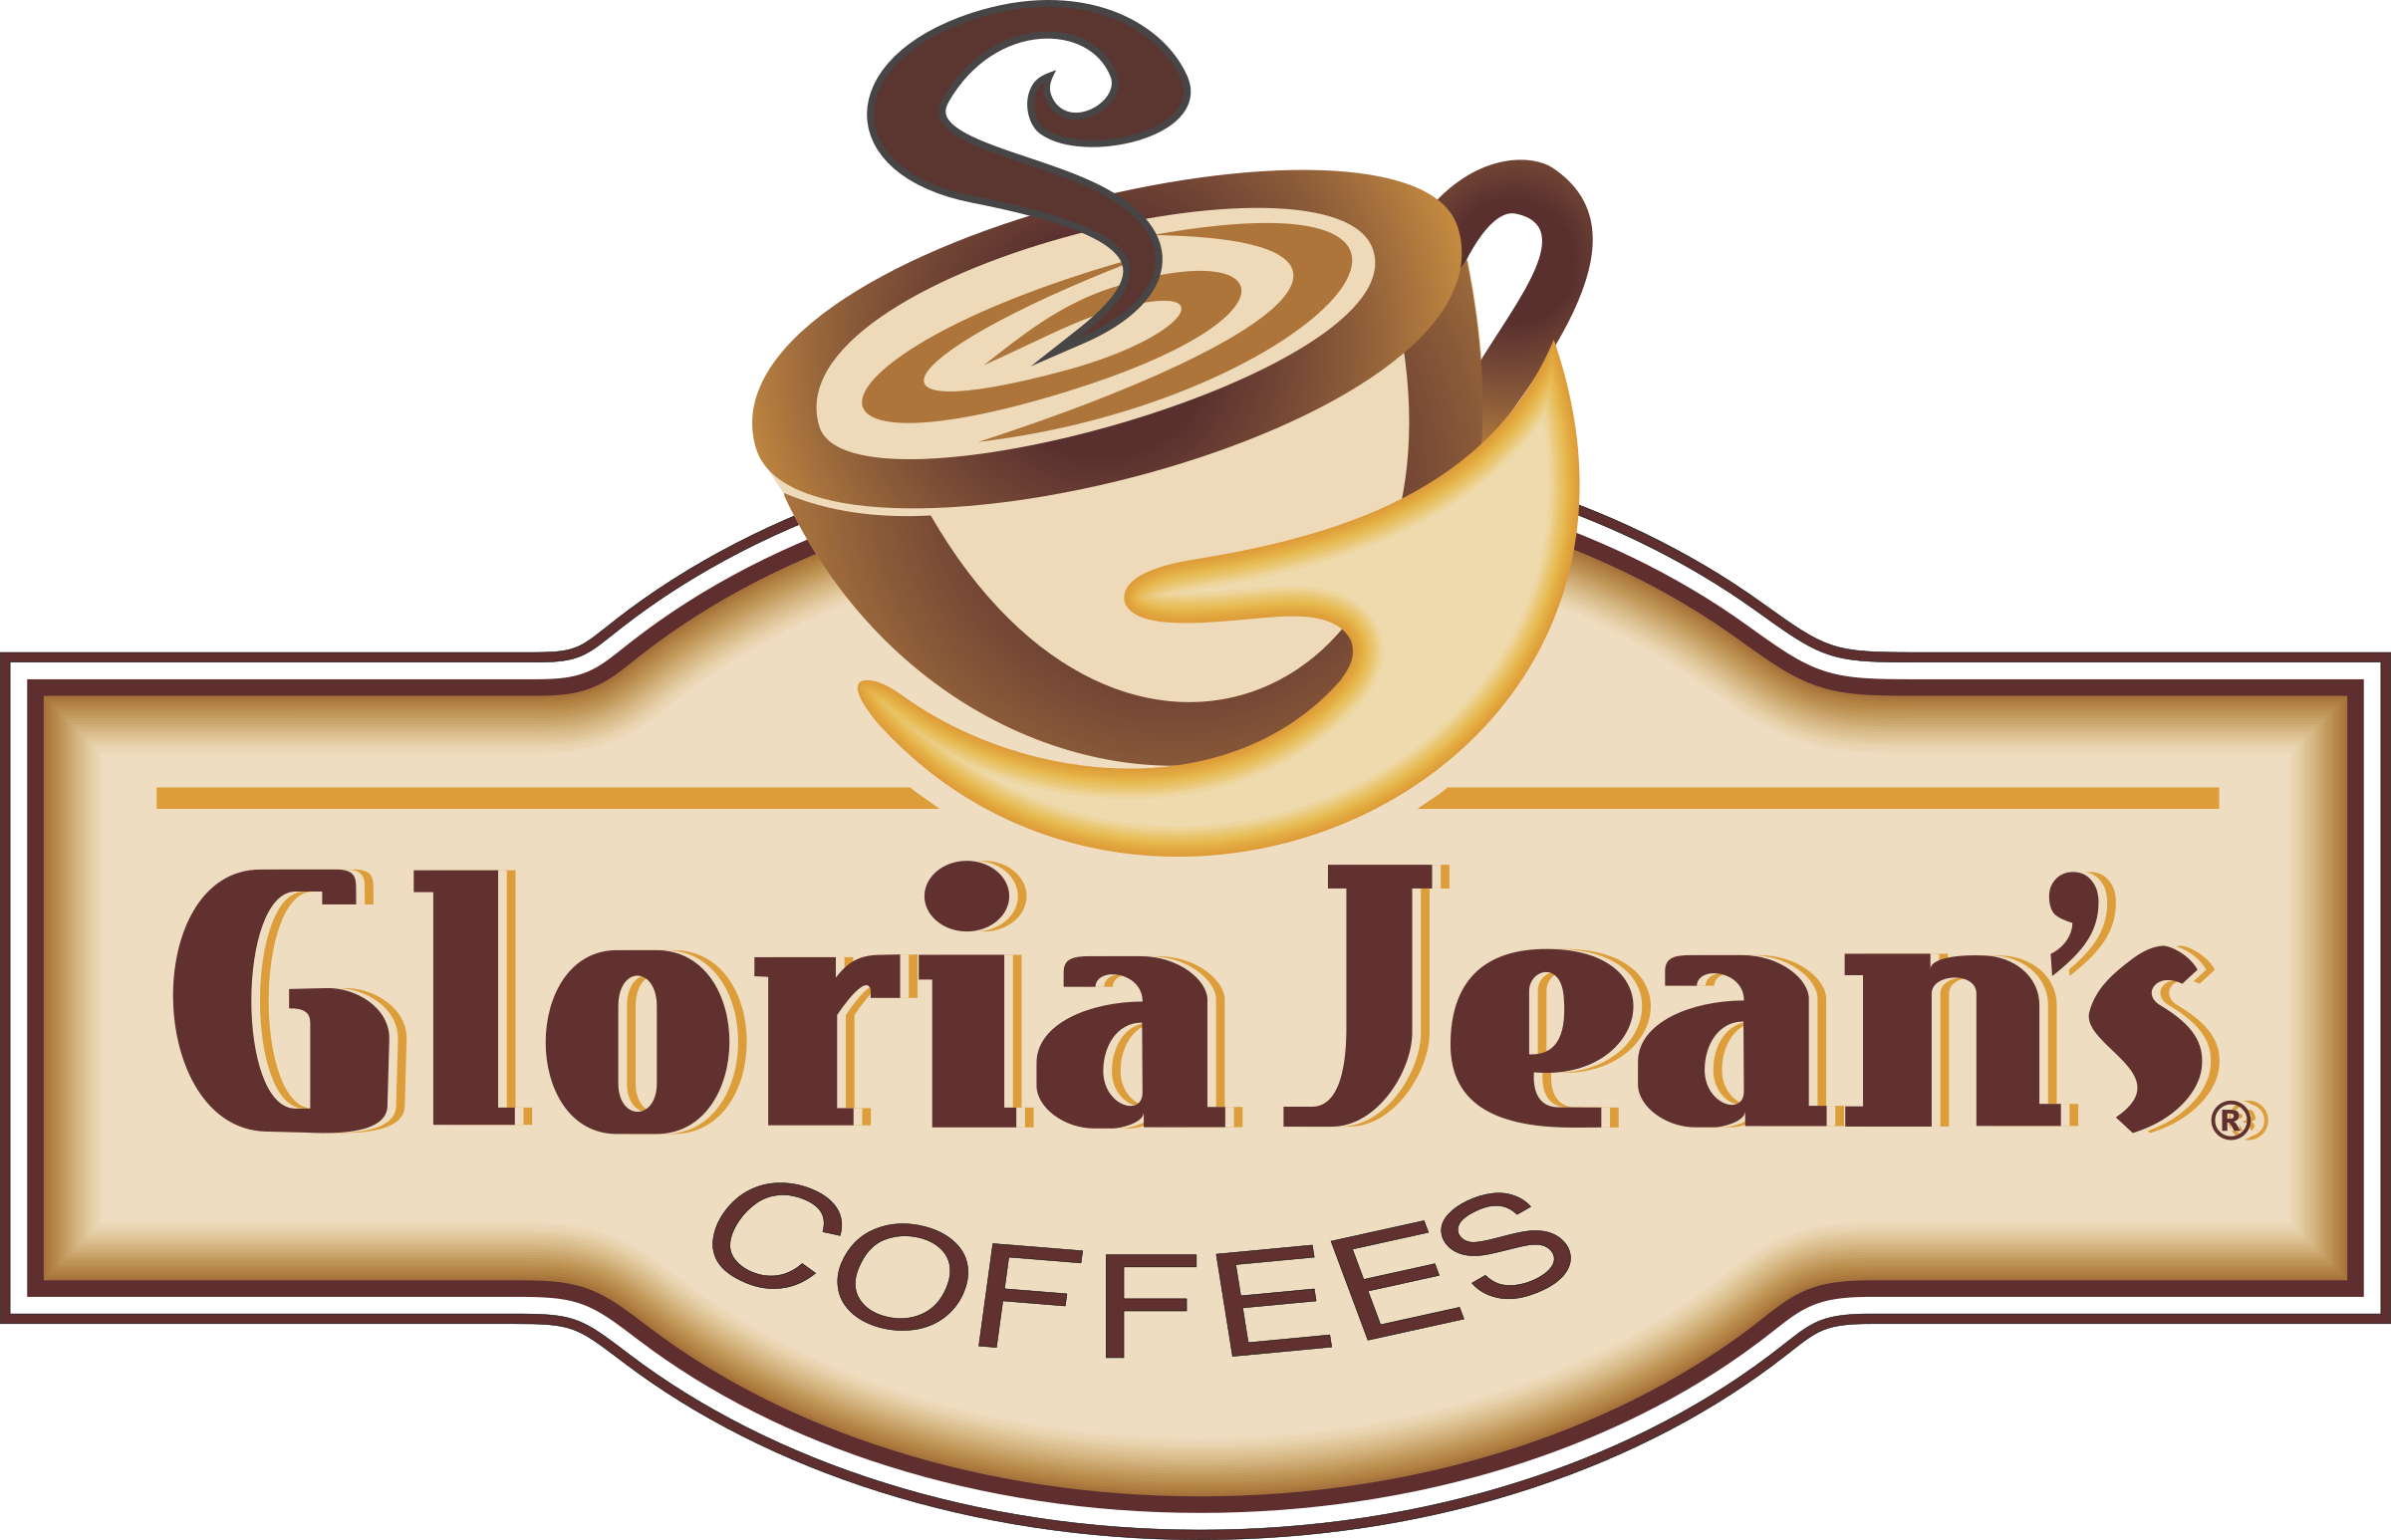 Coffee logo png. Gloria jeans transparent svg